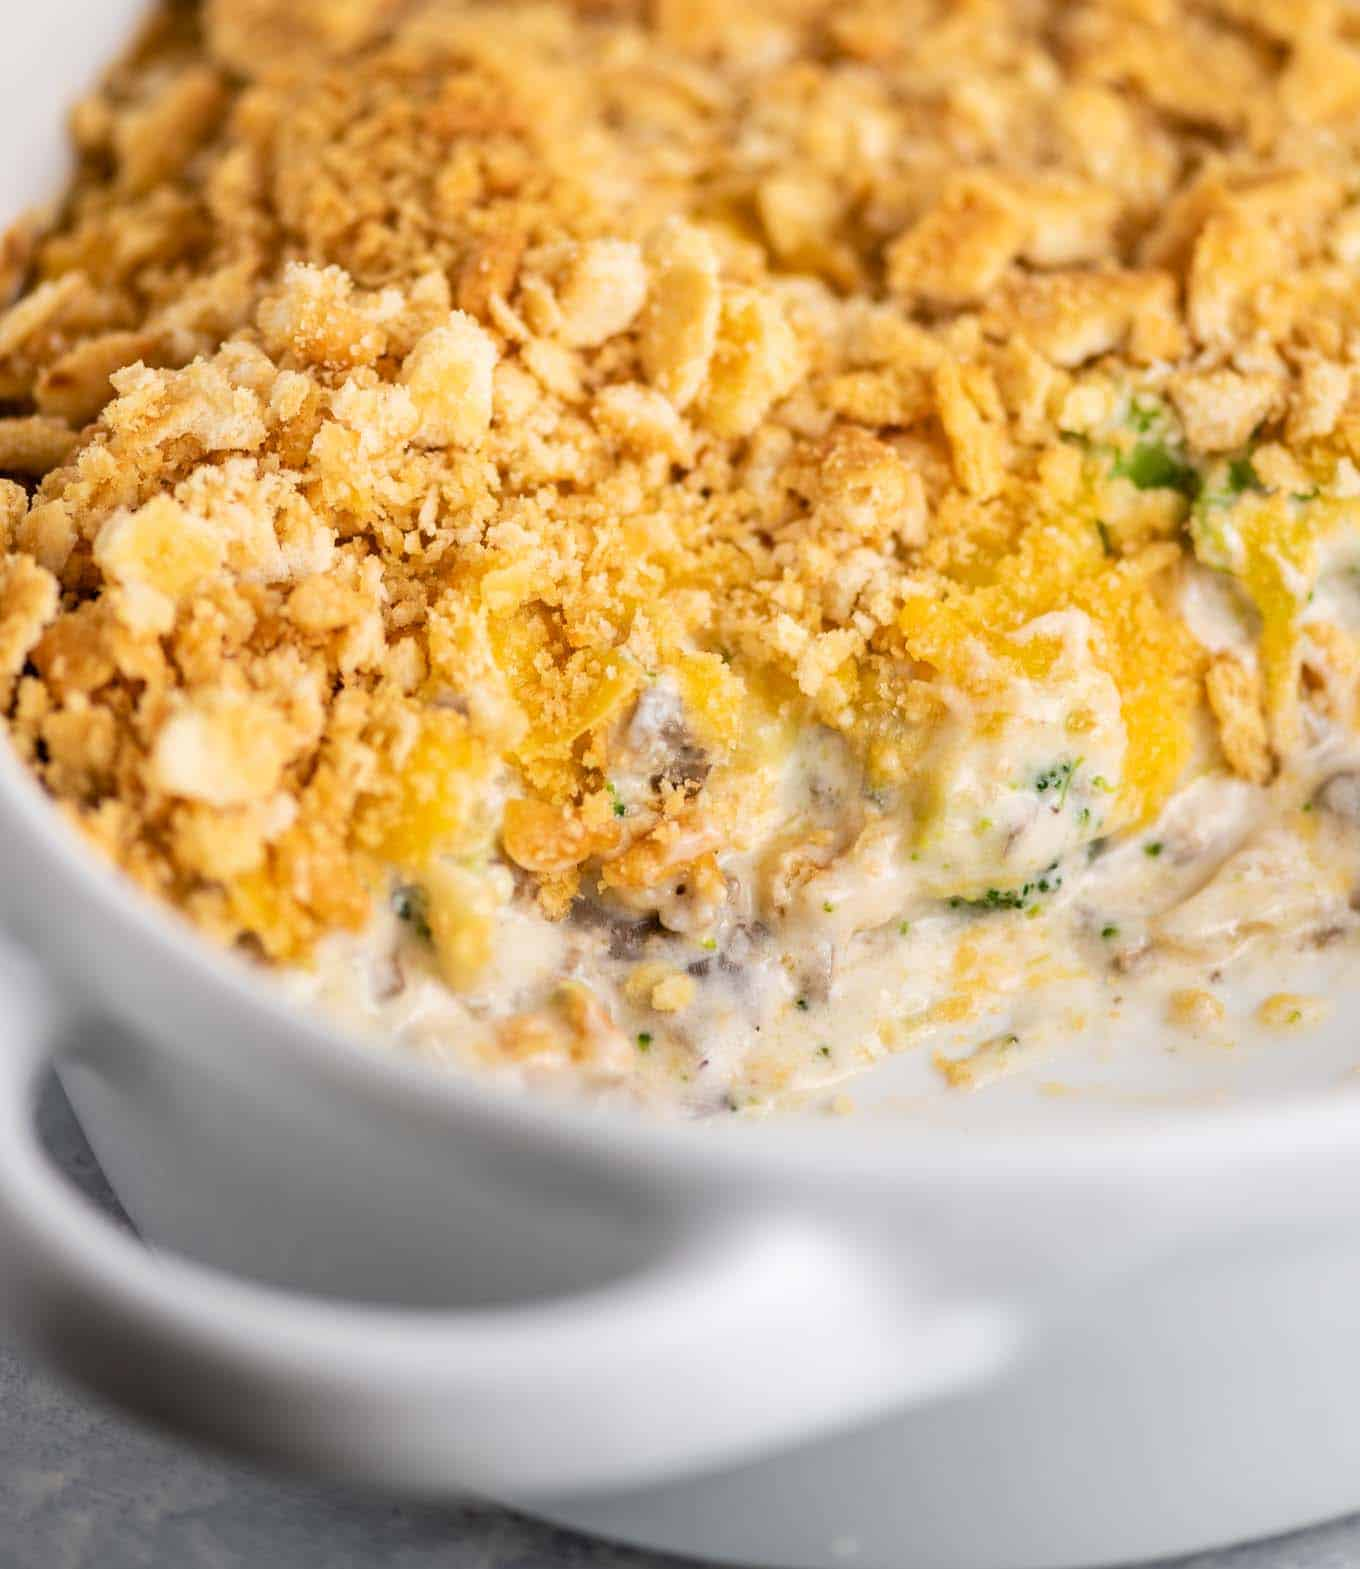 broccoli and cheese casserole in a baking dish